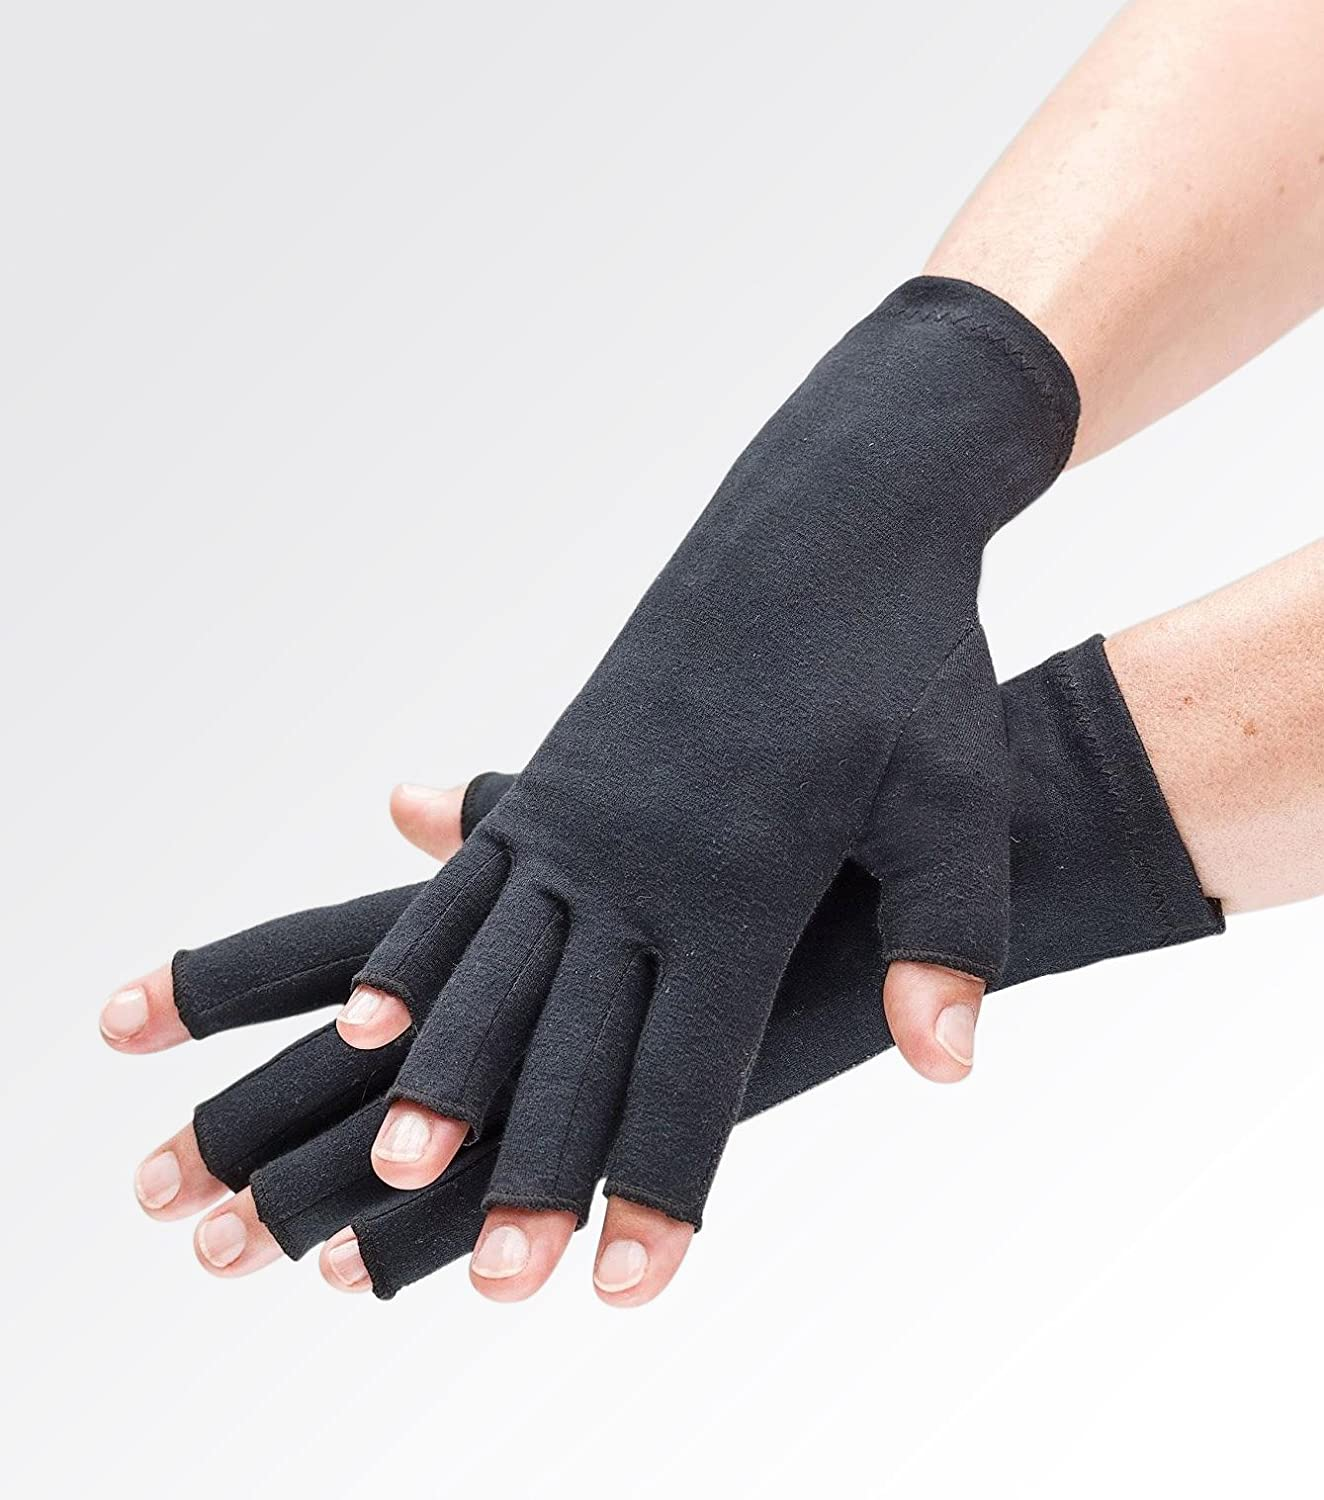 Amazon.com: Compression Gloves for Arthritis Pain Relief. Comfy Black Fingerless Gloves for Women or Men. Joint Support for Rheumatoid and Osteoarthritis, ...